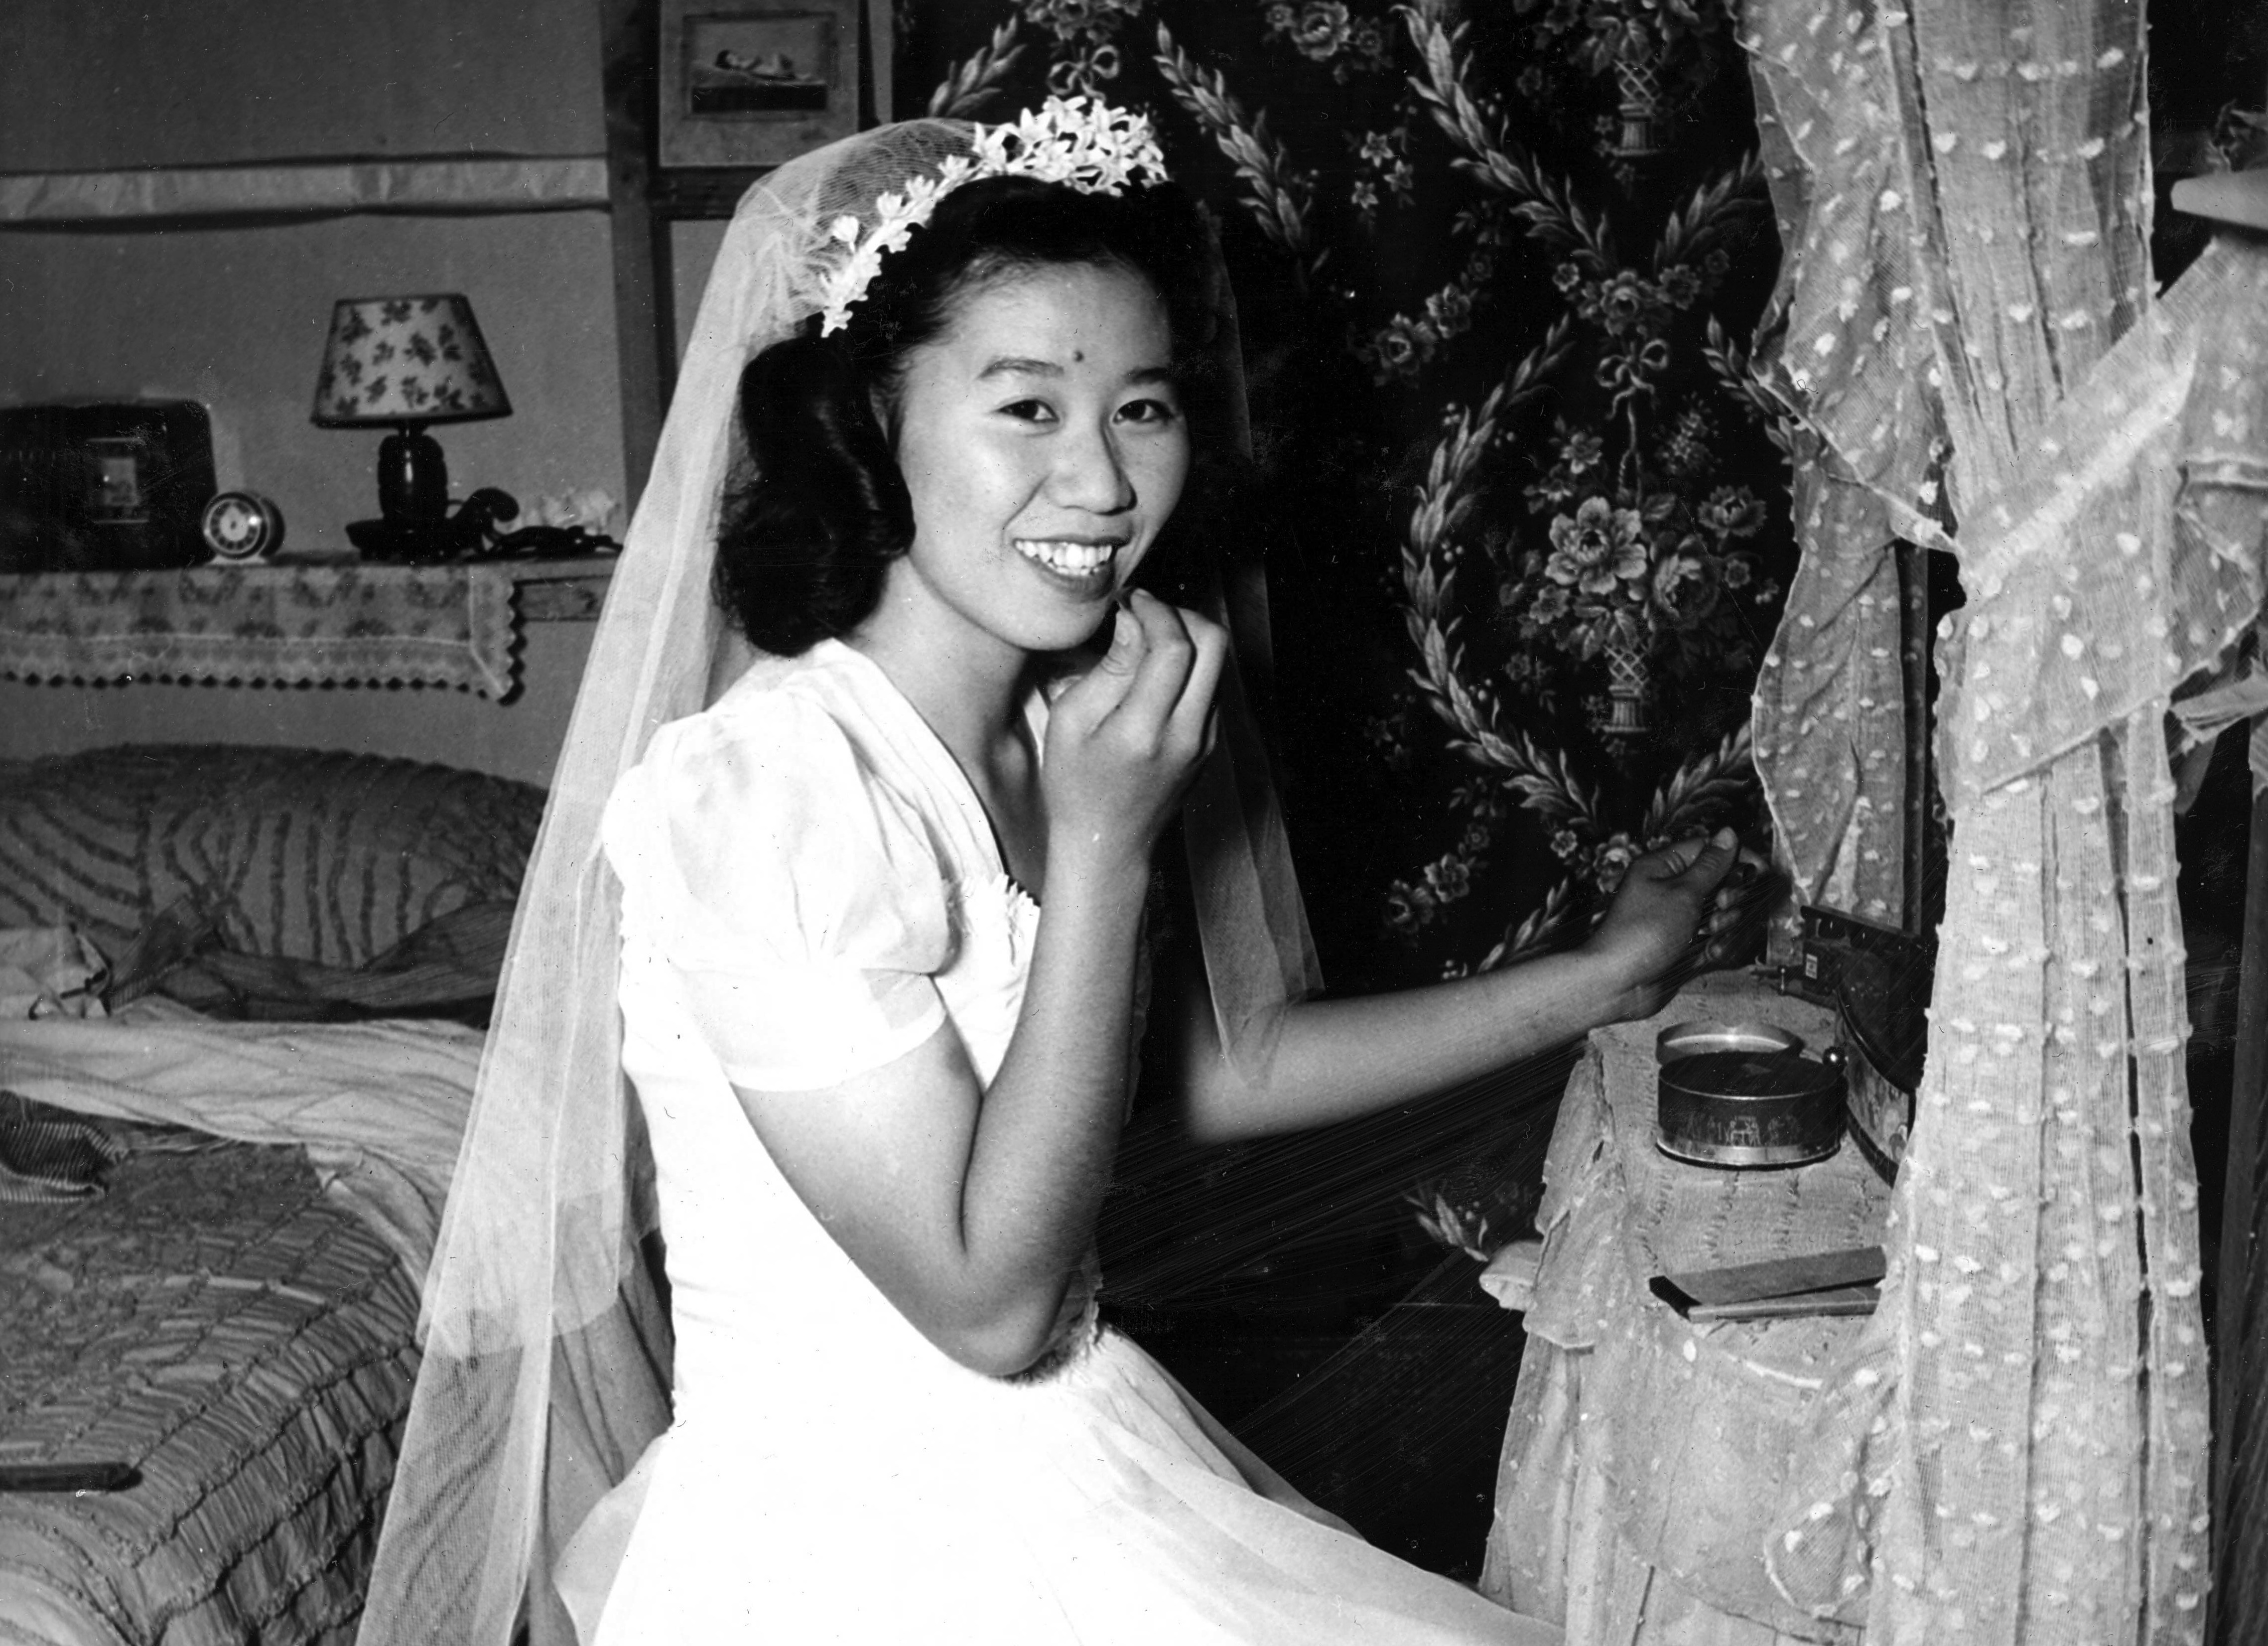 From with the war bride story